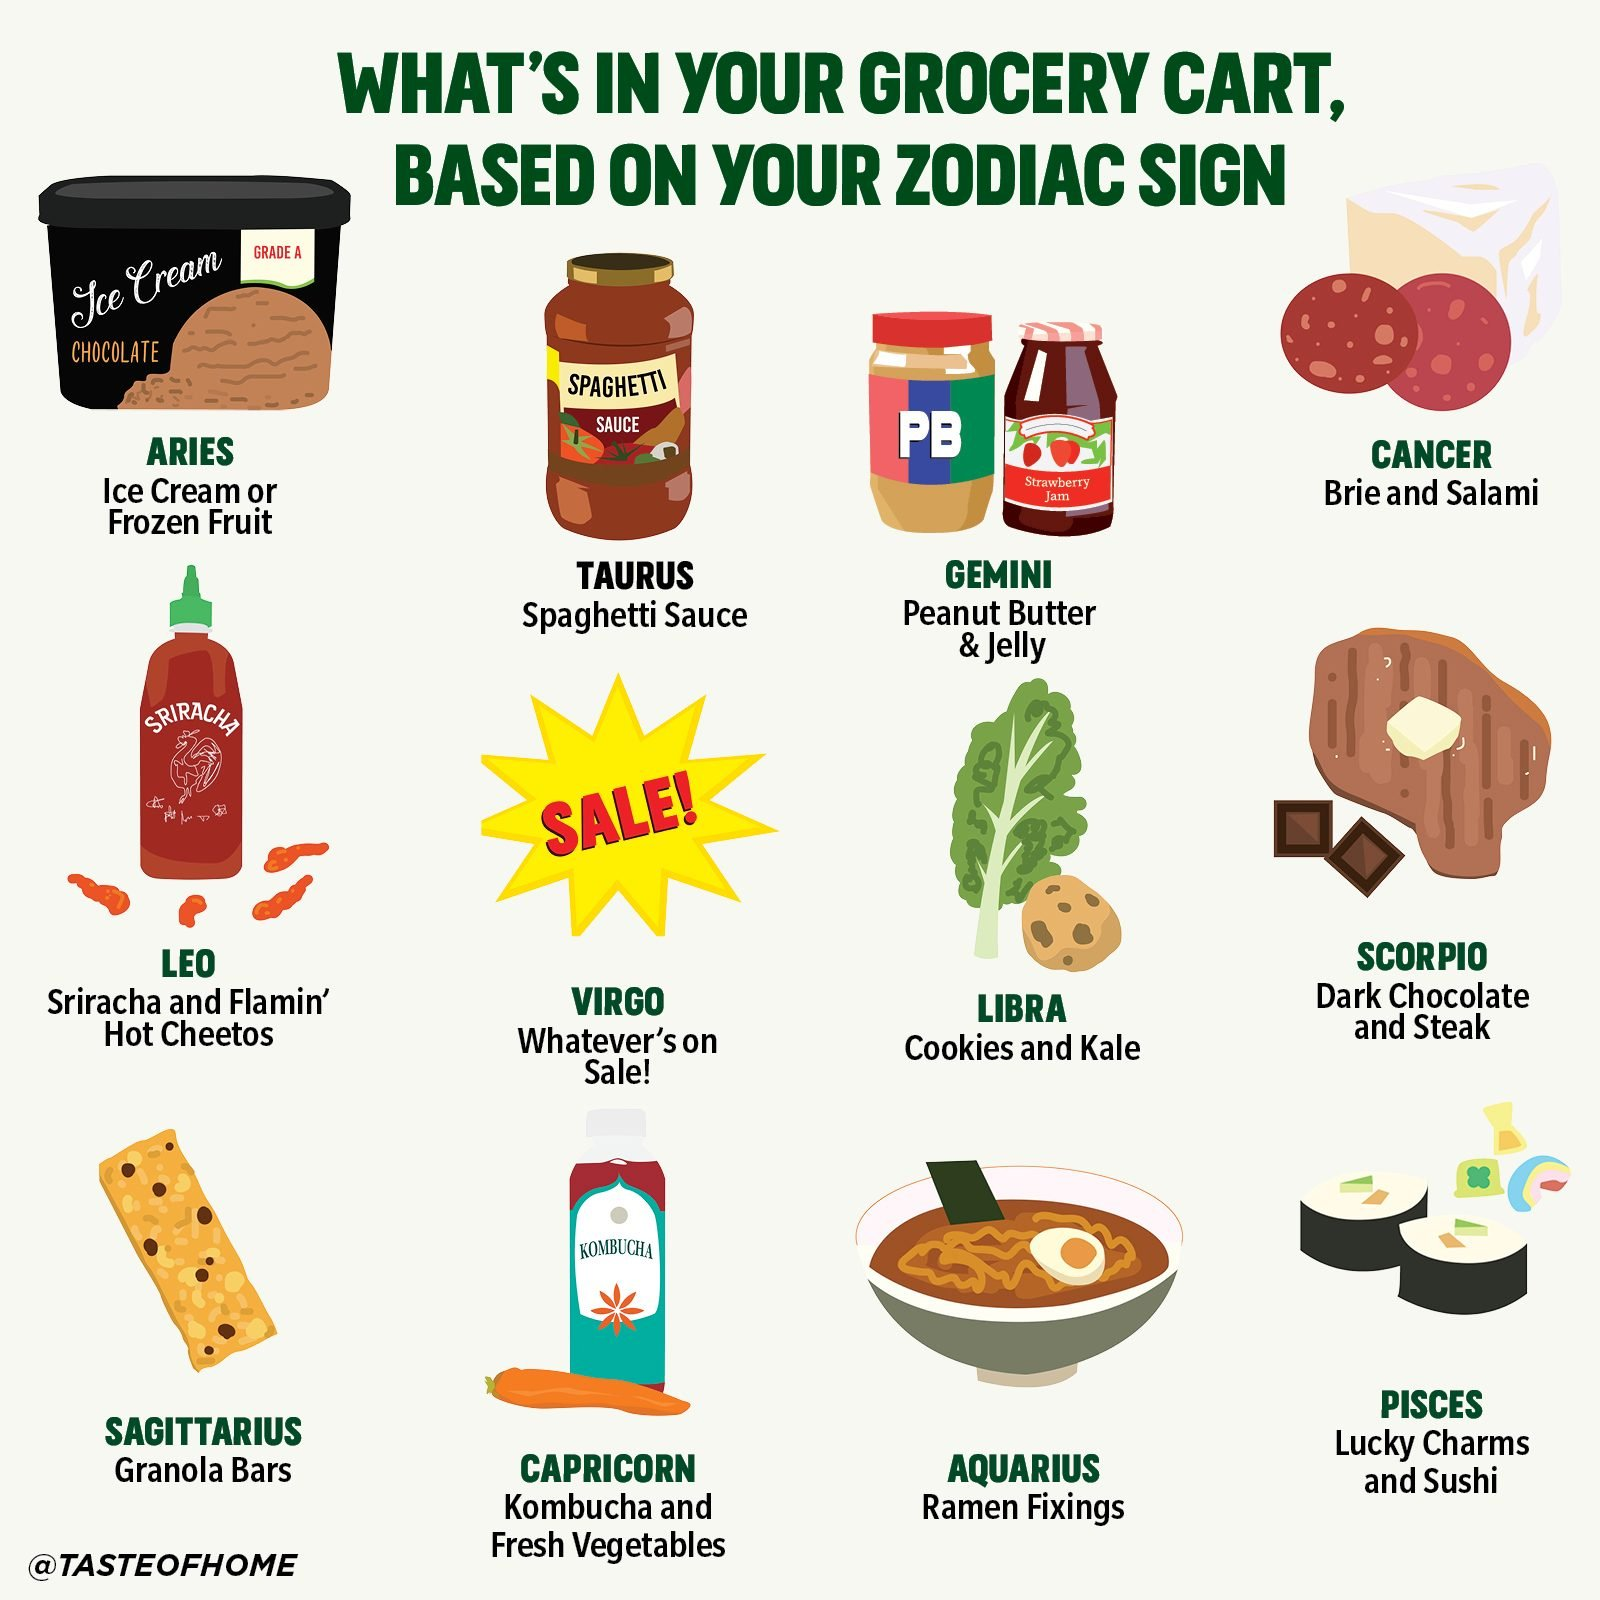 What's in Your Grocery Cart, Based on Your Zodiac Sign_2